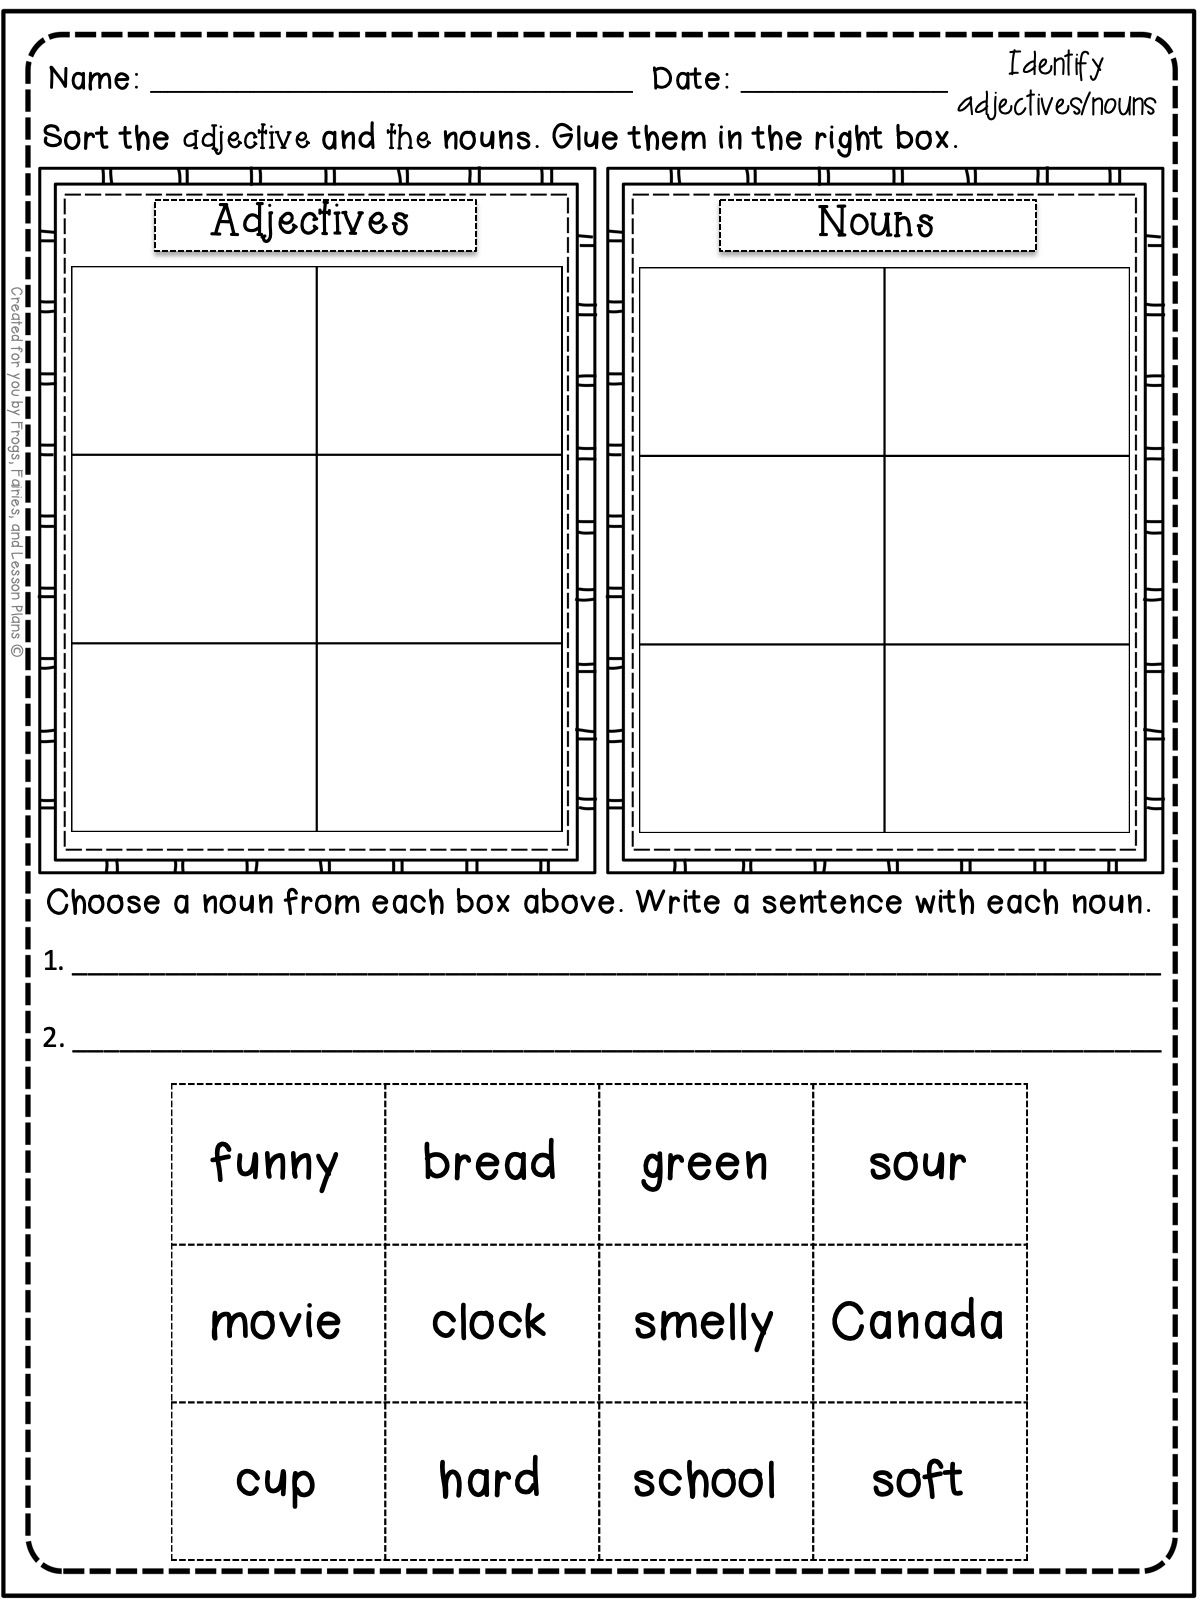 Adjective Resources For 1st Graders   Teaching adjectives [ 1600 x 1200 Pixel ]